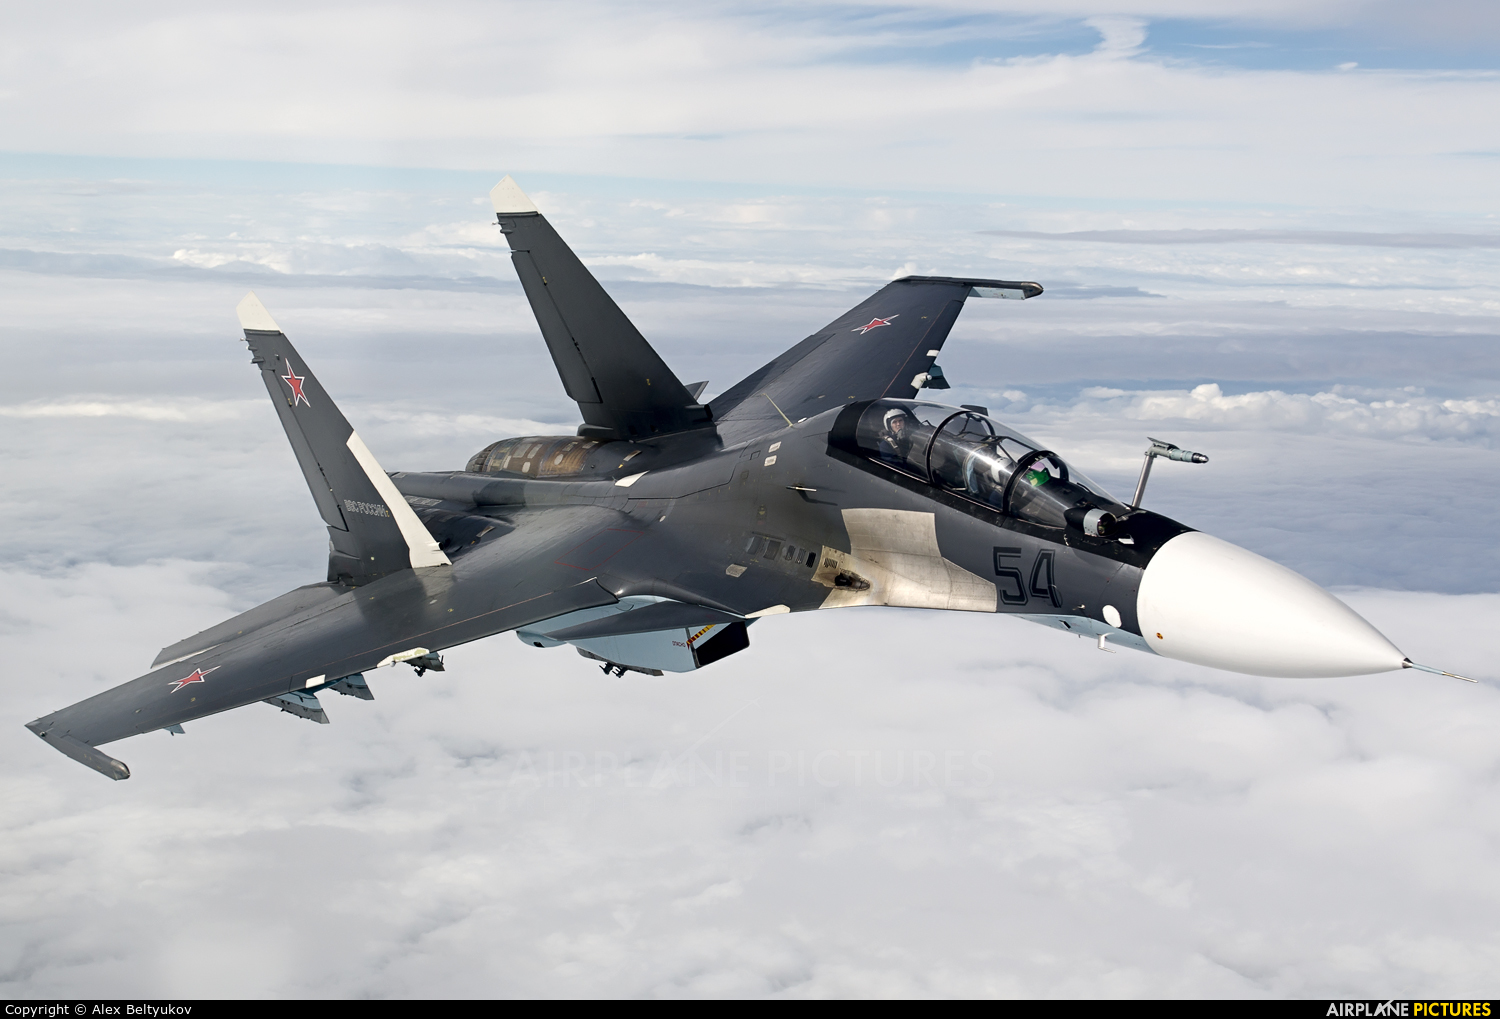 Russia - Air Force 54 BLACK aircraft at In Flight - Russia